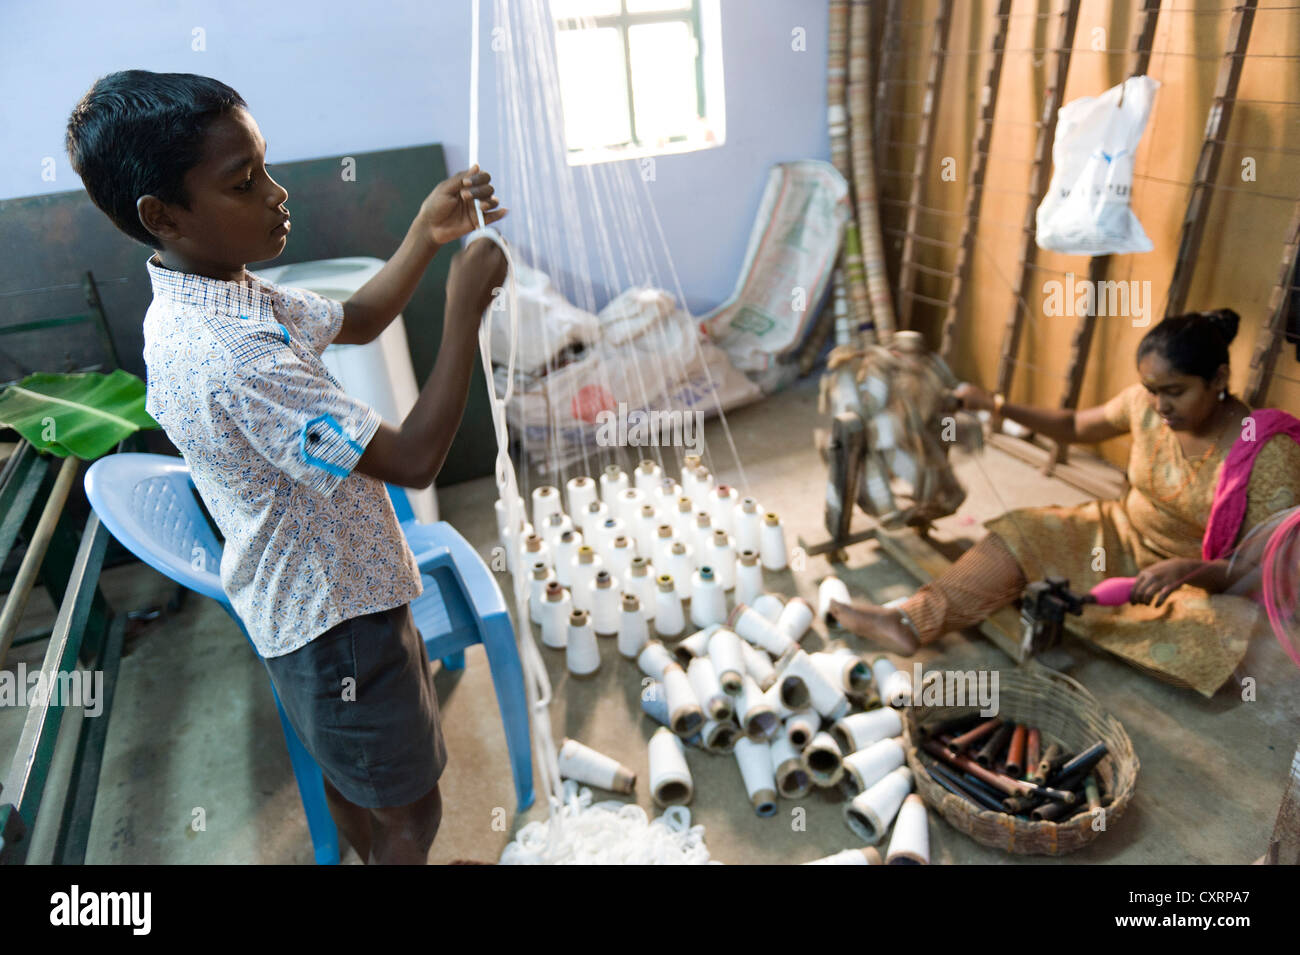 Child labourers working in a mosquito net factory, Karur, Tamil Nadu, South India, India, Asia - Stock Image